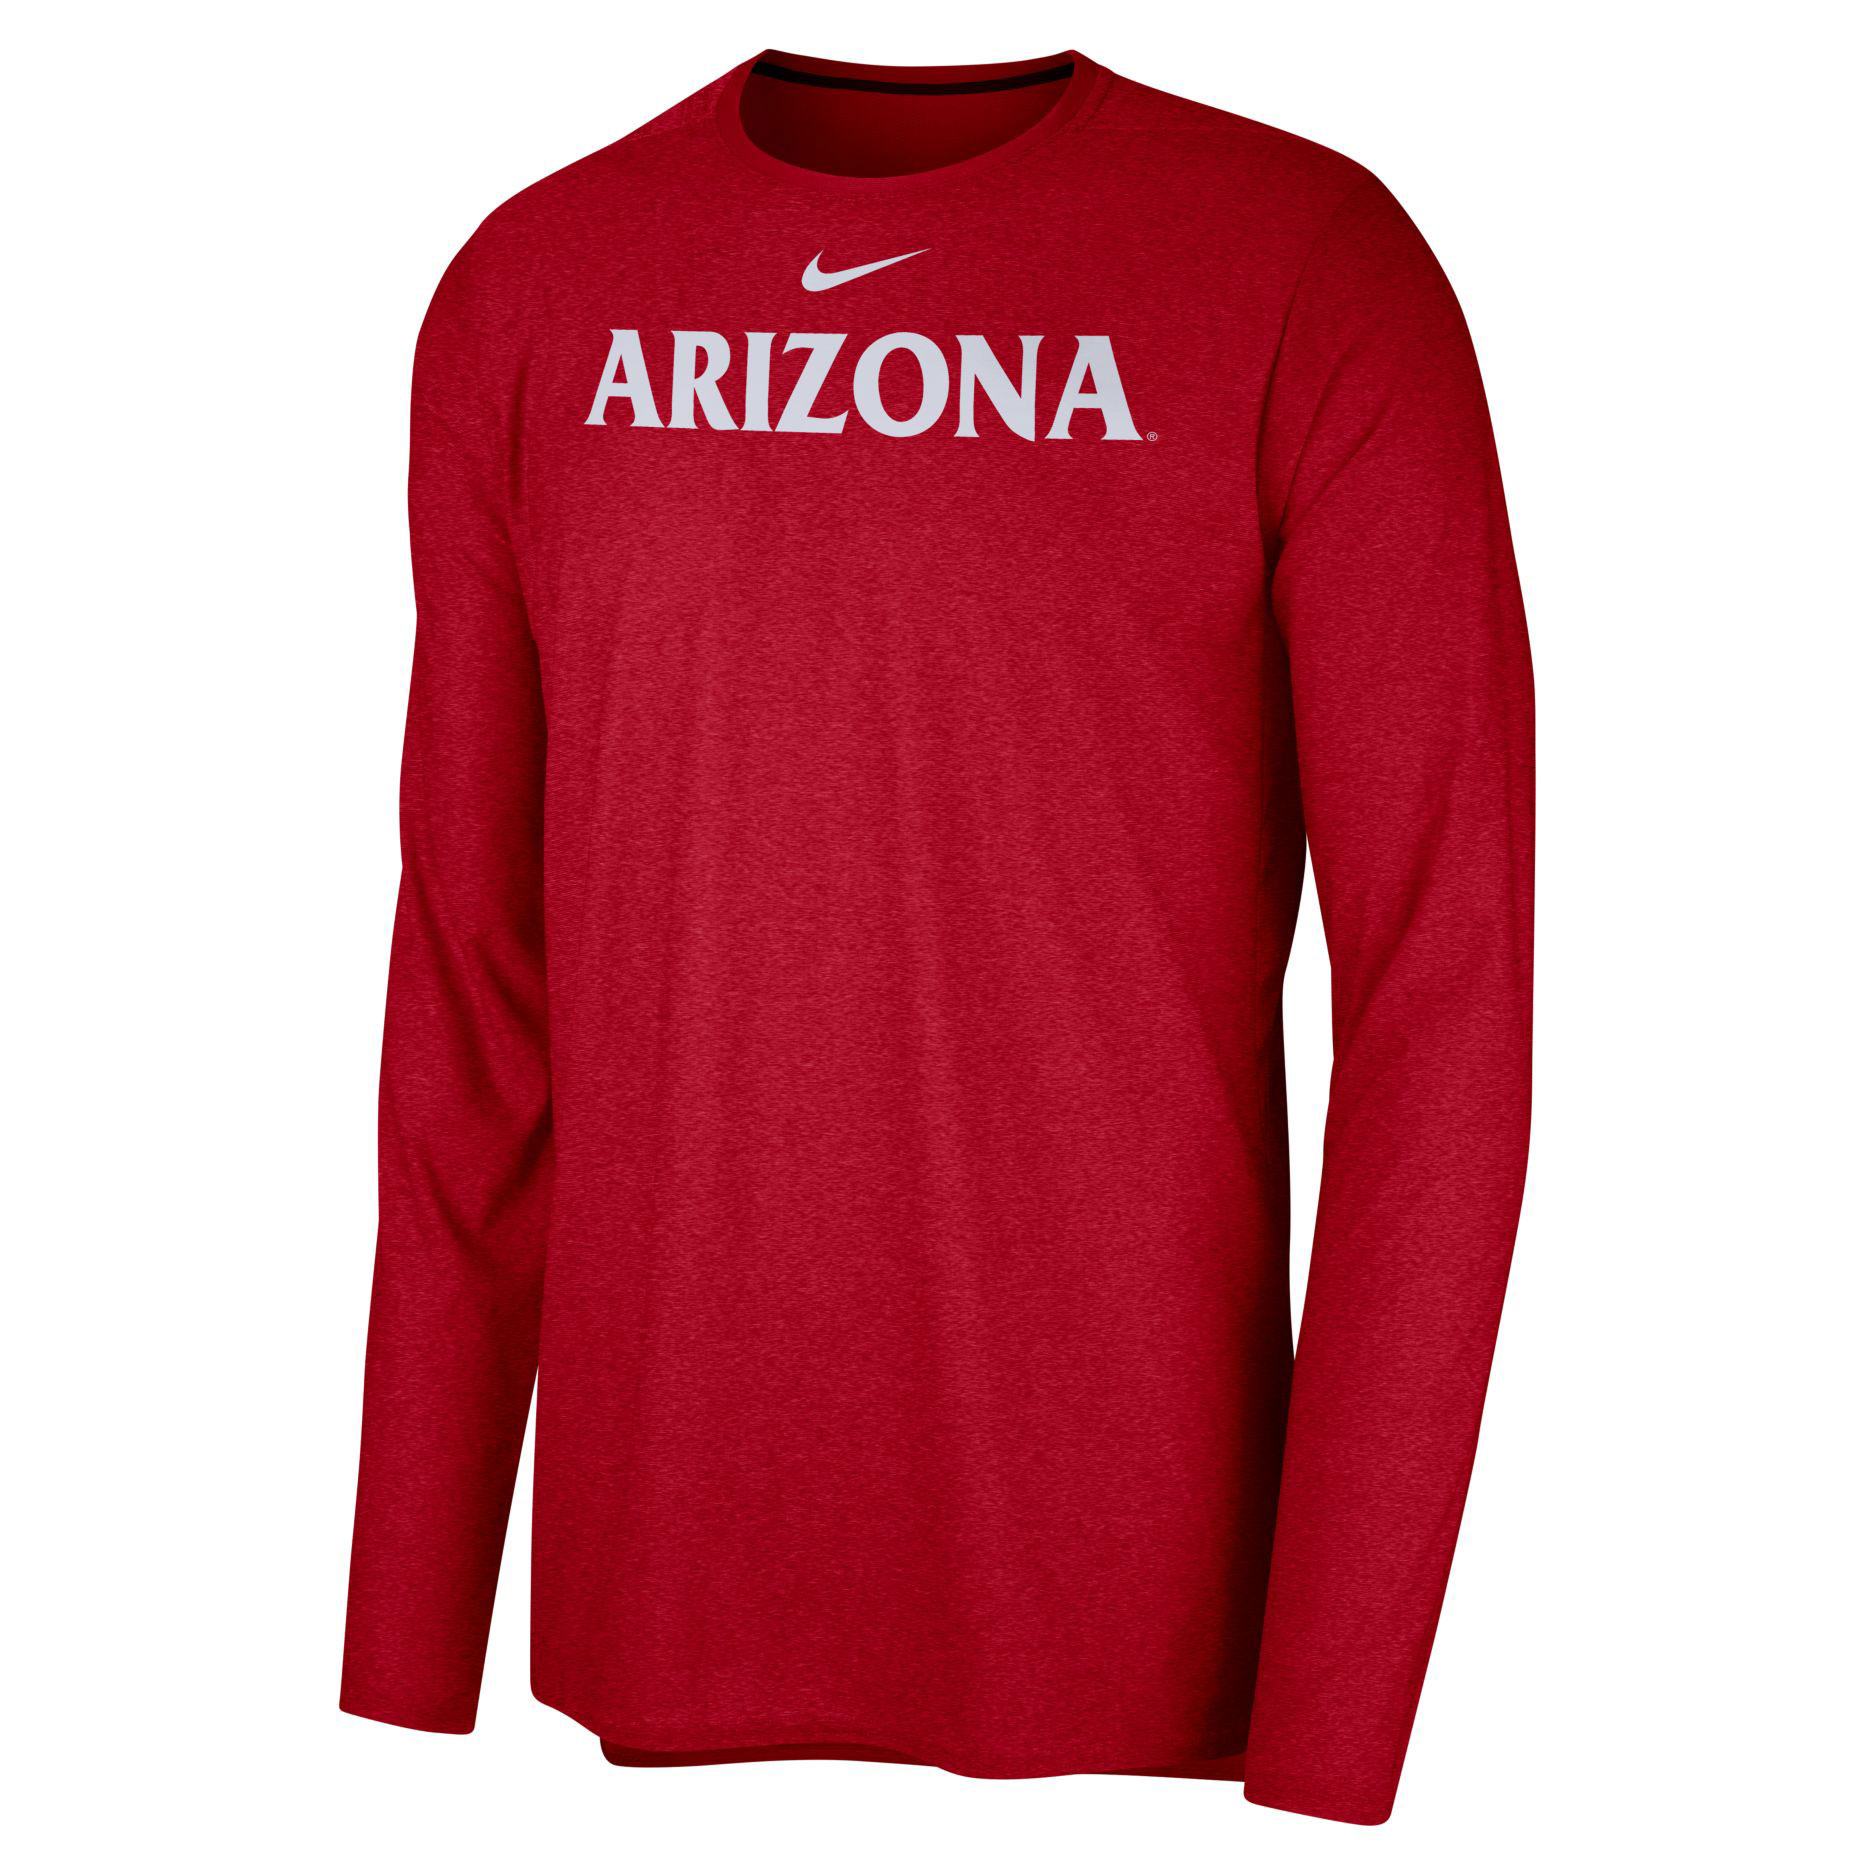 5fbba2fff7c3 Nike  Arizona Men s Dri-FIT Player Long Sleeve T-Shirt-Red. Item  Description. Warm up ...